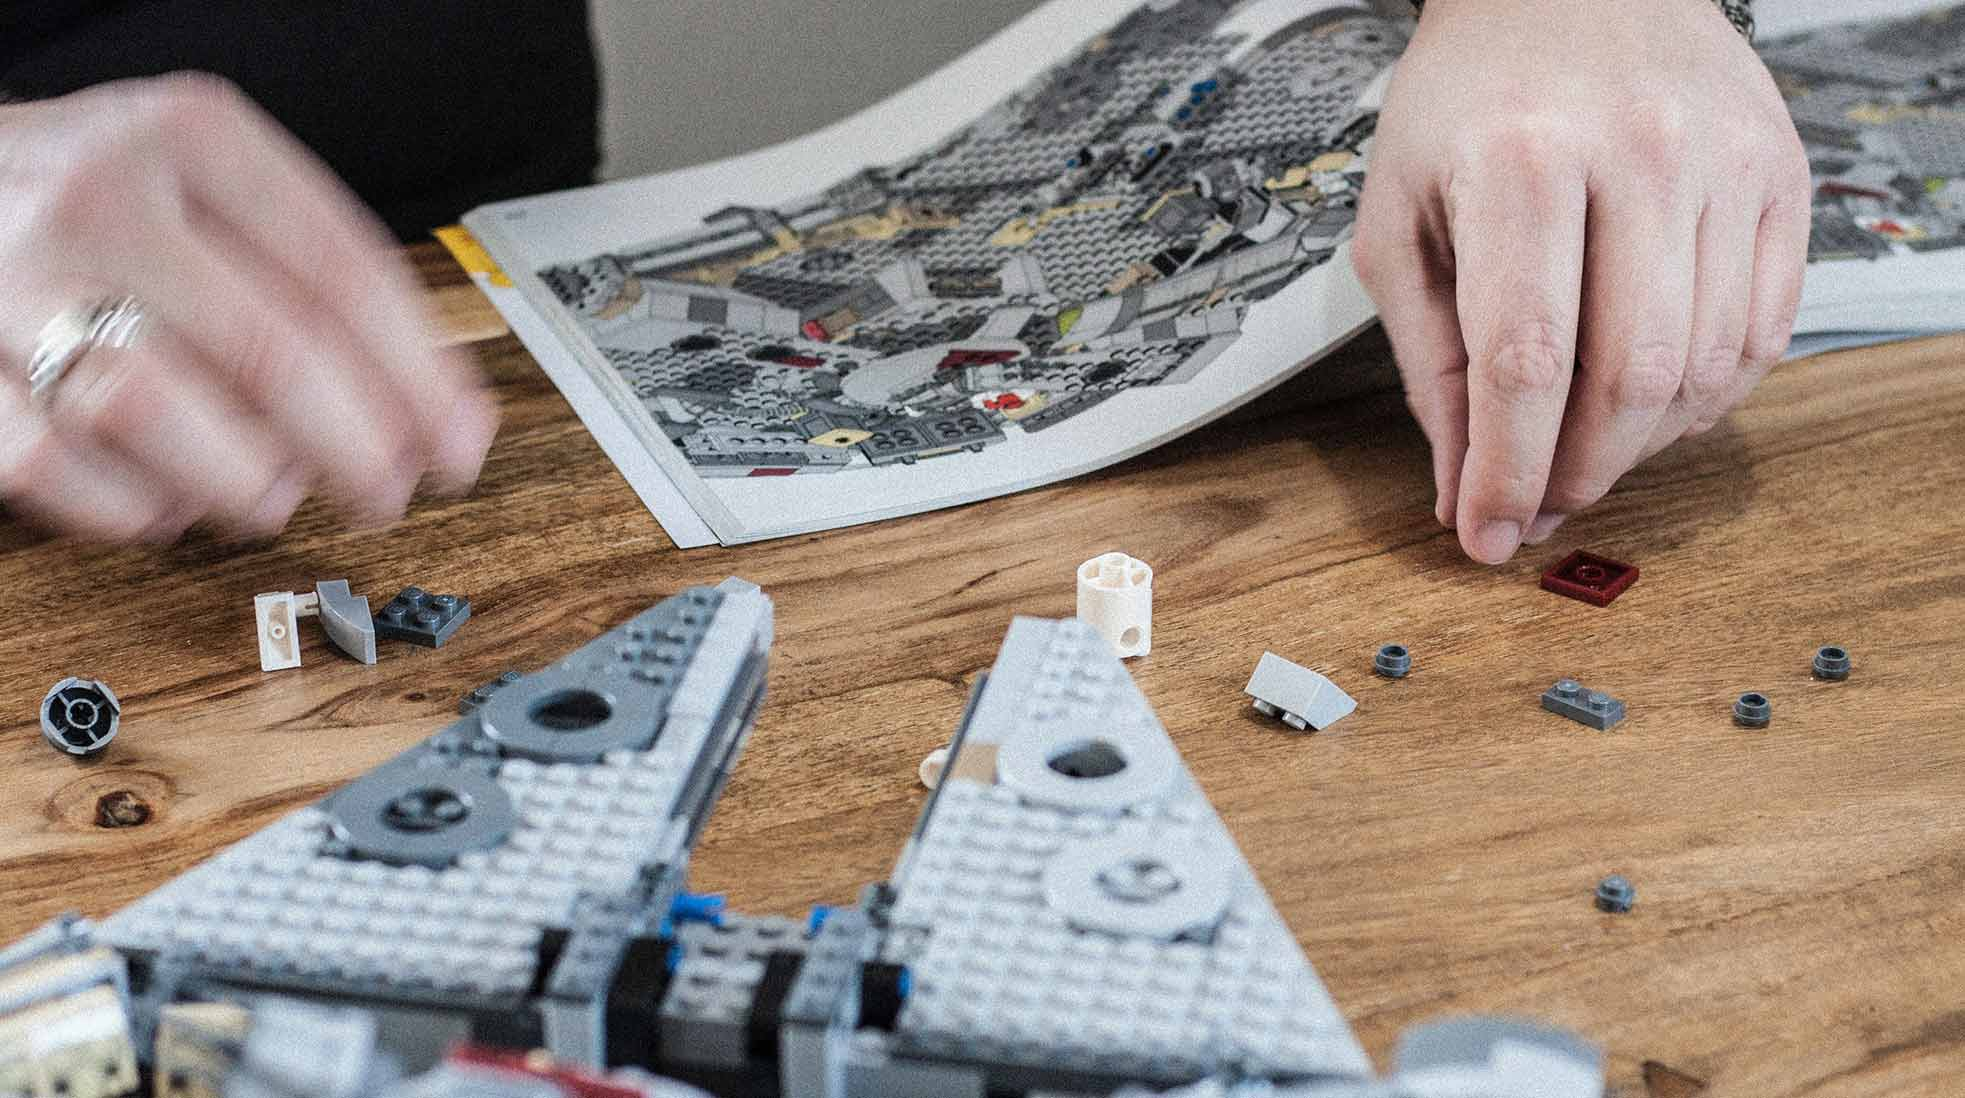 The LEGO Millennium Falcon, one of the biggest LEGO sets, being built.